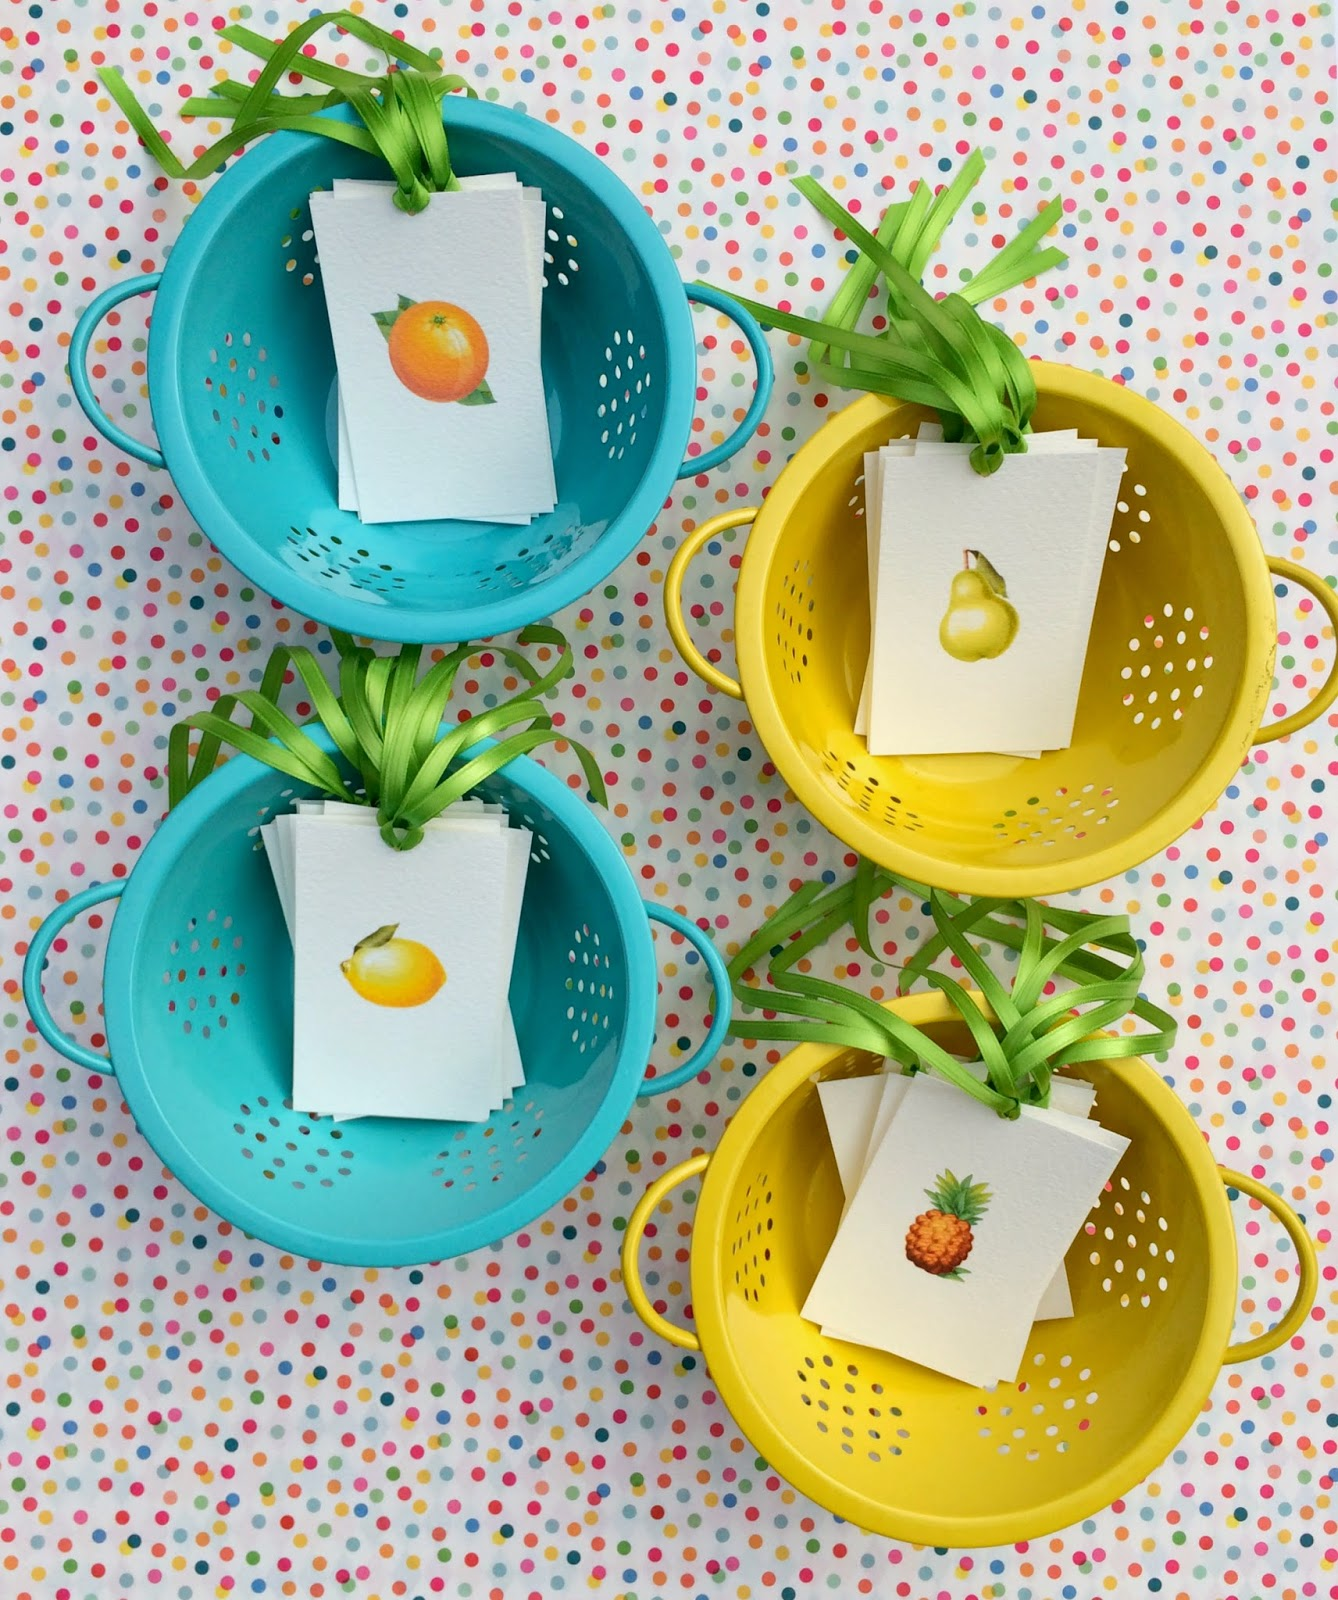 Dorable Kitchen Tea Gift For Guests Adornment - Bathroom ideas ...